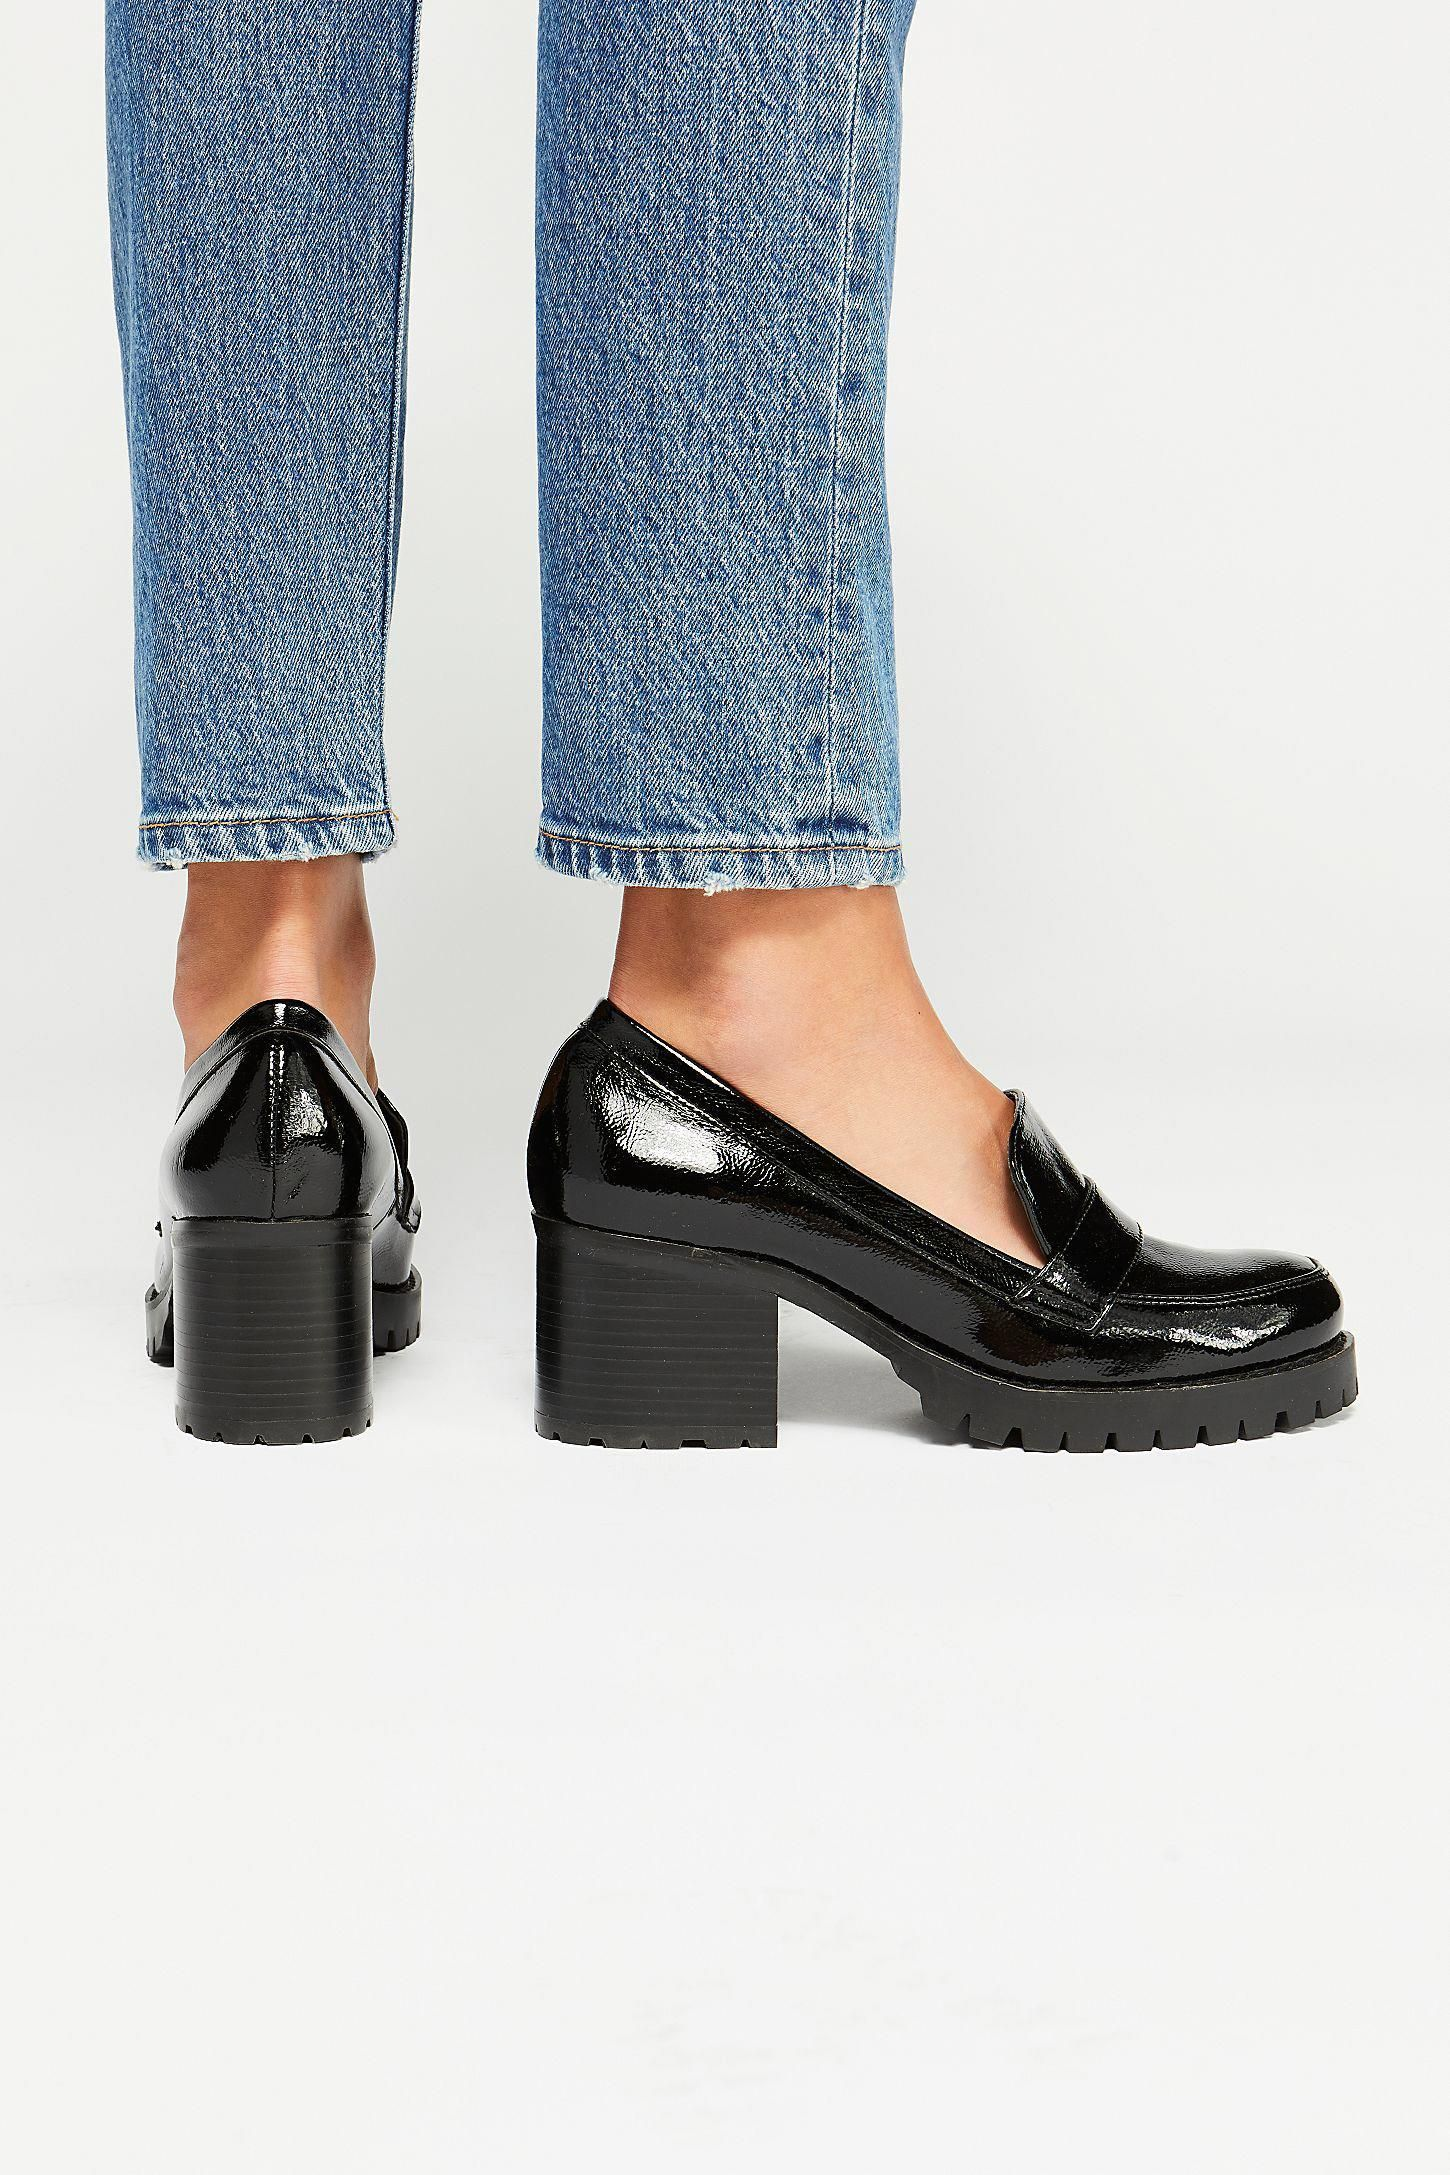 Kmart Womens Work Shoes